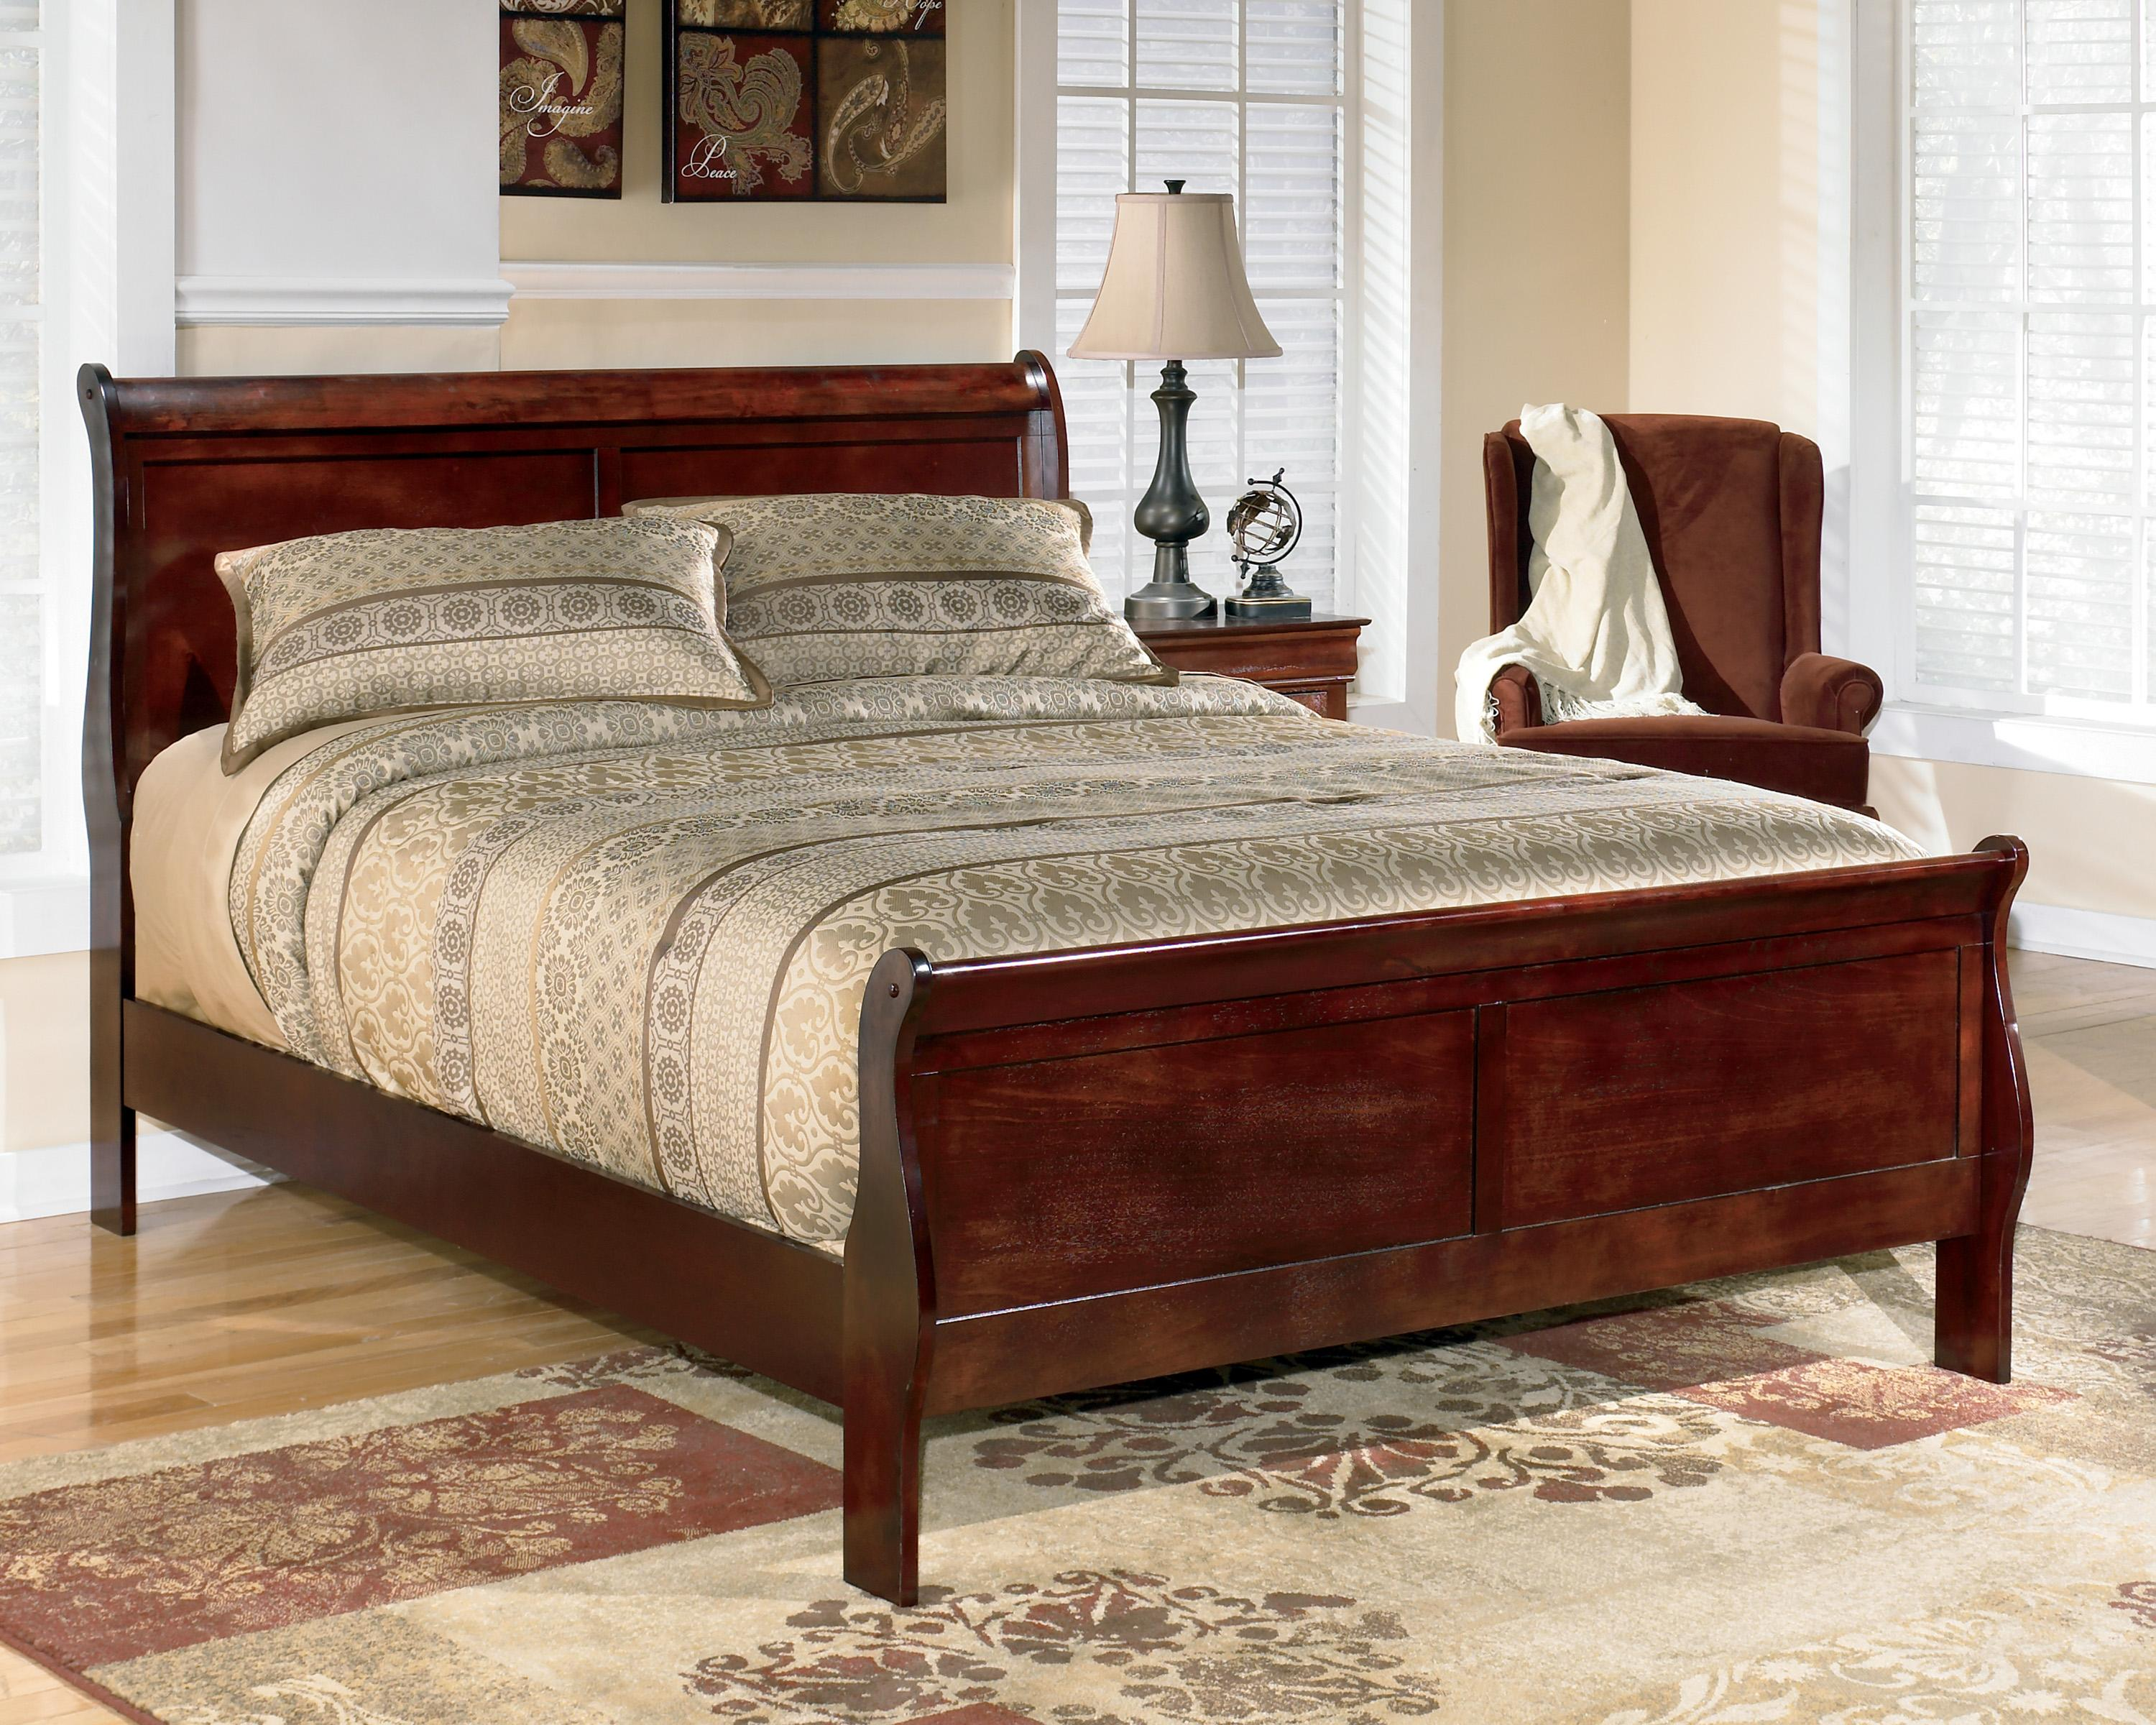 Signature Design by Ashley Alisdair California King Sleigh Bed - Item Number: B376-82+94